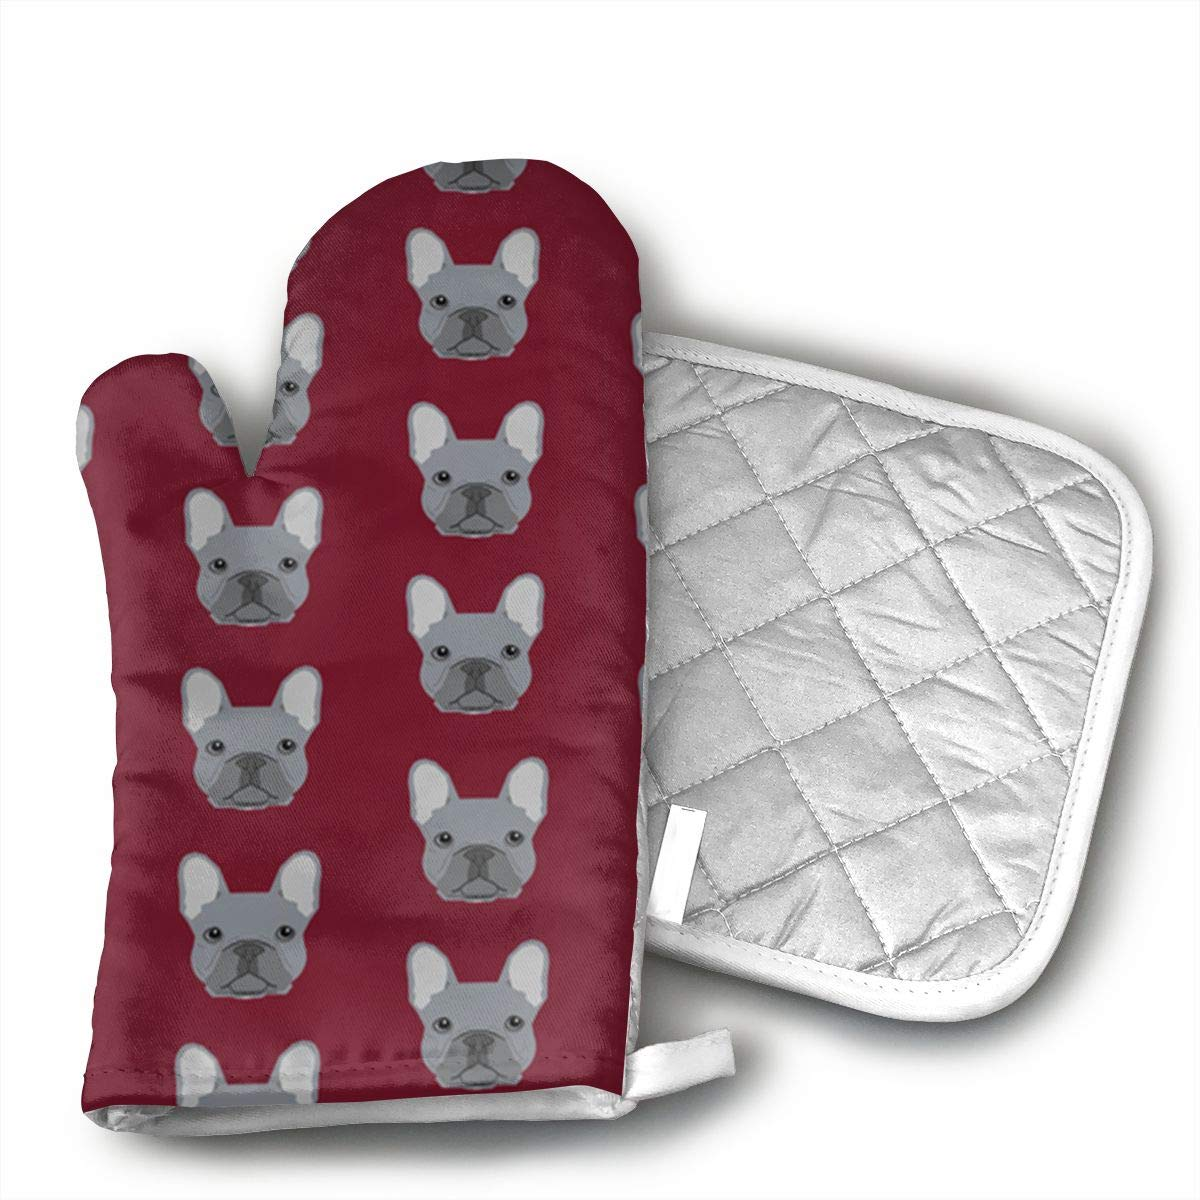 QEDGC Frenchie French Bulldog Oven Mitts - air of Non-Slip Kitchen Oven Gloves for Cooking,Baking,Grilling,Barbecue Potholders,